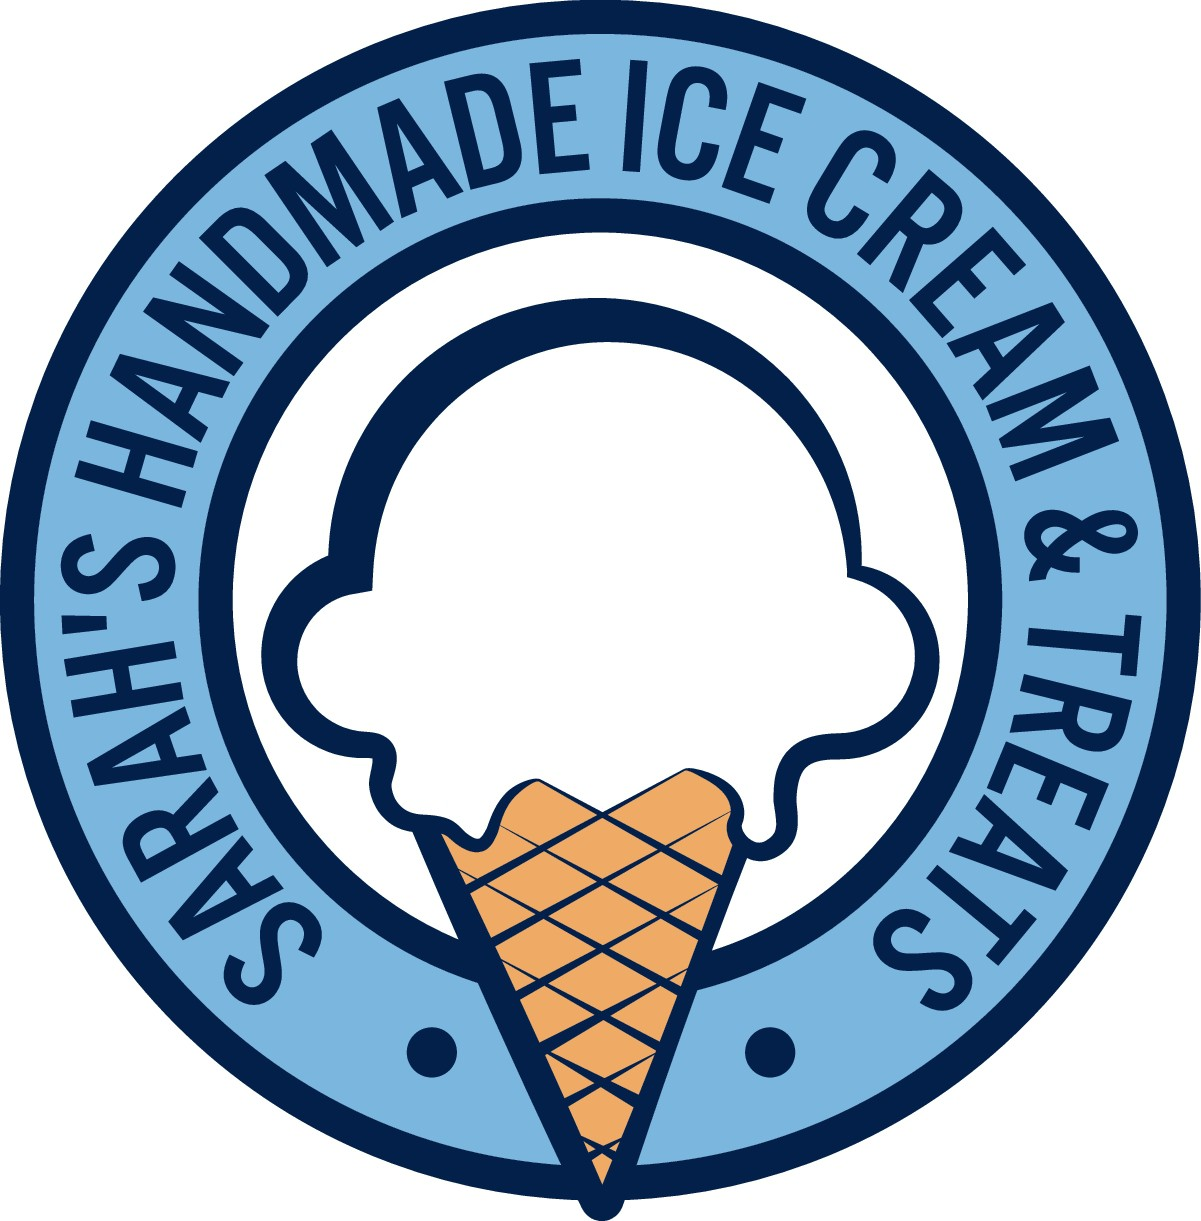 Sarah's Handmade Ice Cream & Treats